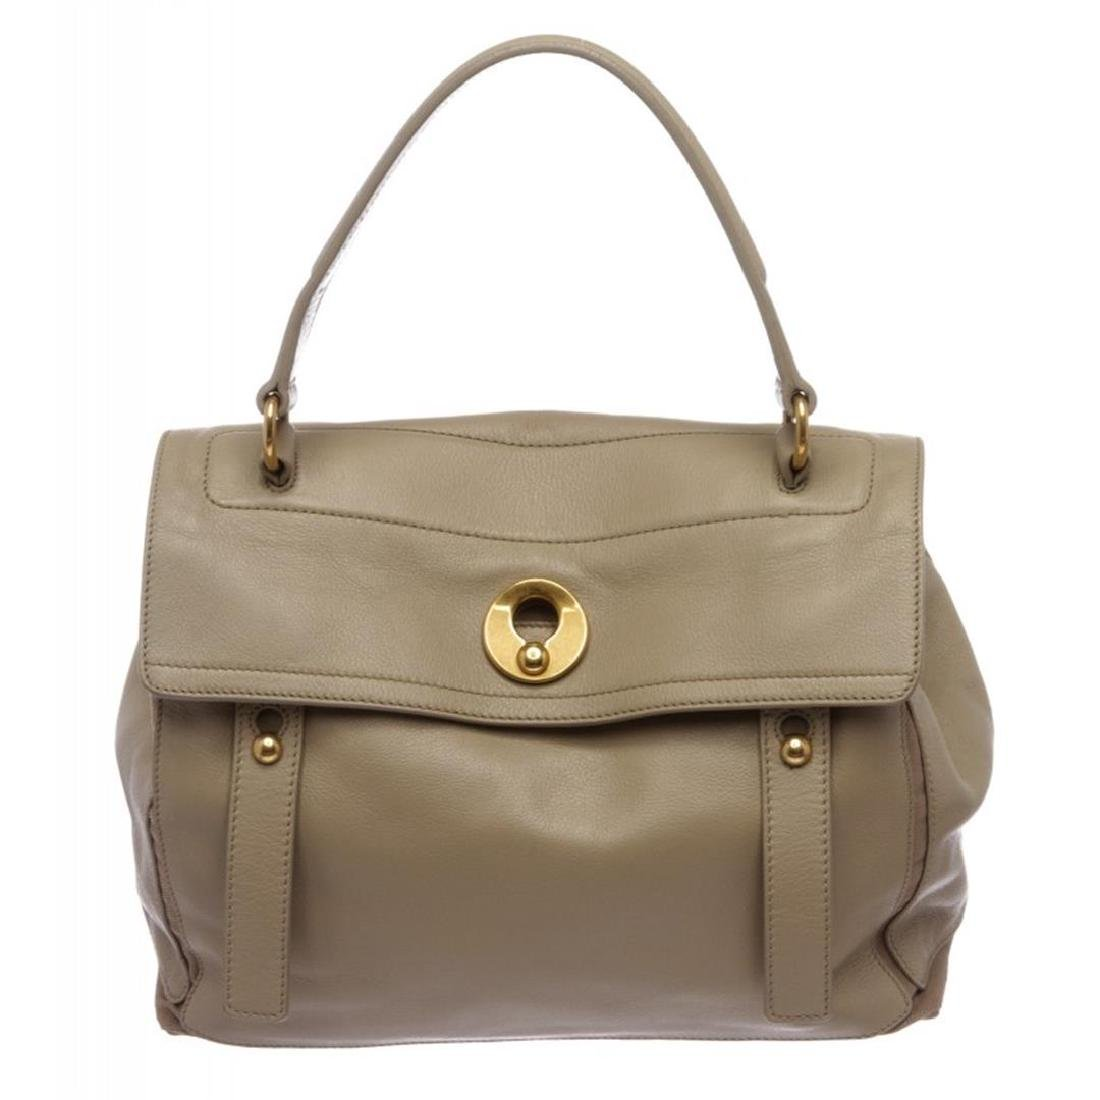 Yves Saint Laurent Taupe Leather Muse Two Tote Bag